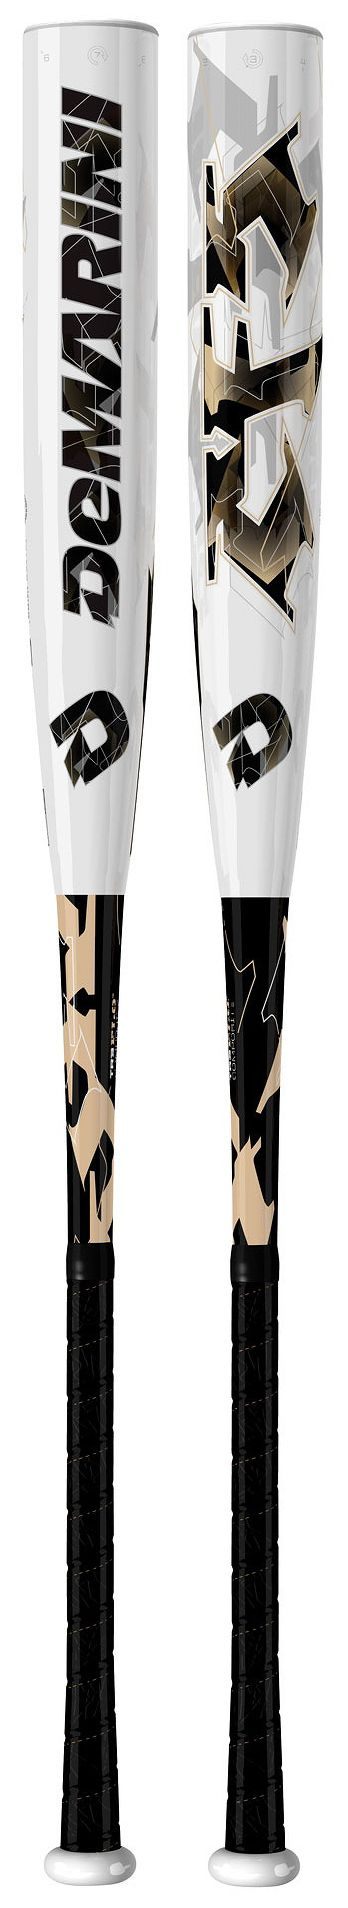 Your complete guide to DeMarini softball bats. Info on all the latest softball bats from DeMarini including size, features, detailed descriptions, best prices, and more. Our site will definitely help you to find the highest quality bats in the market. Browse through our website for more details.